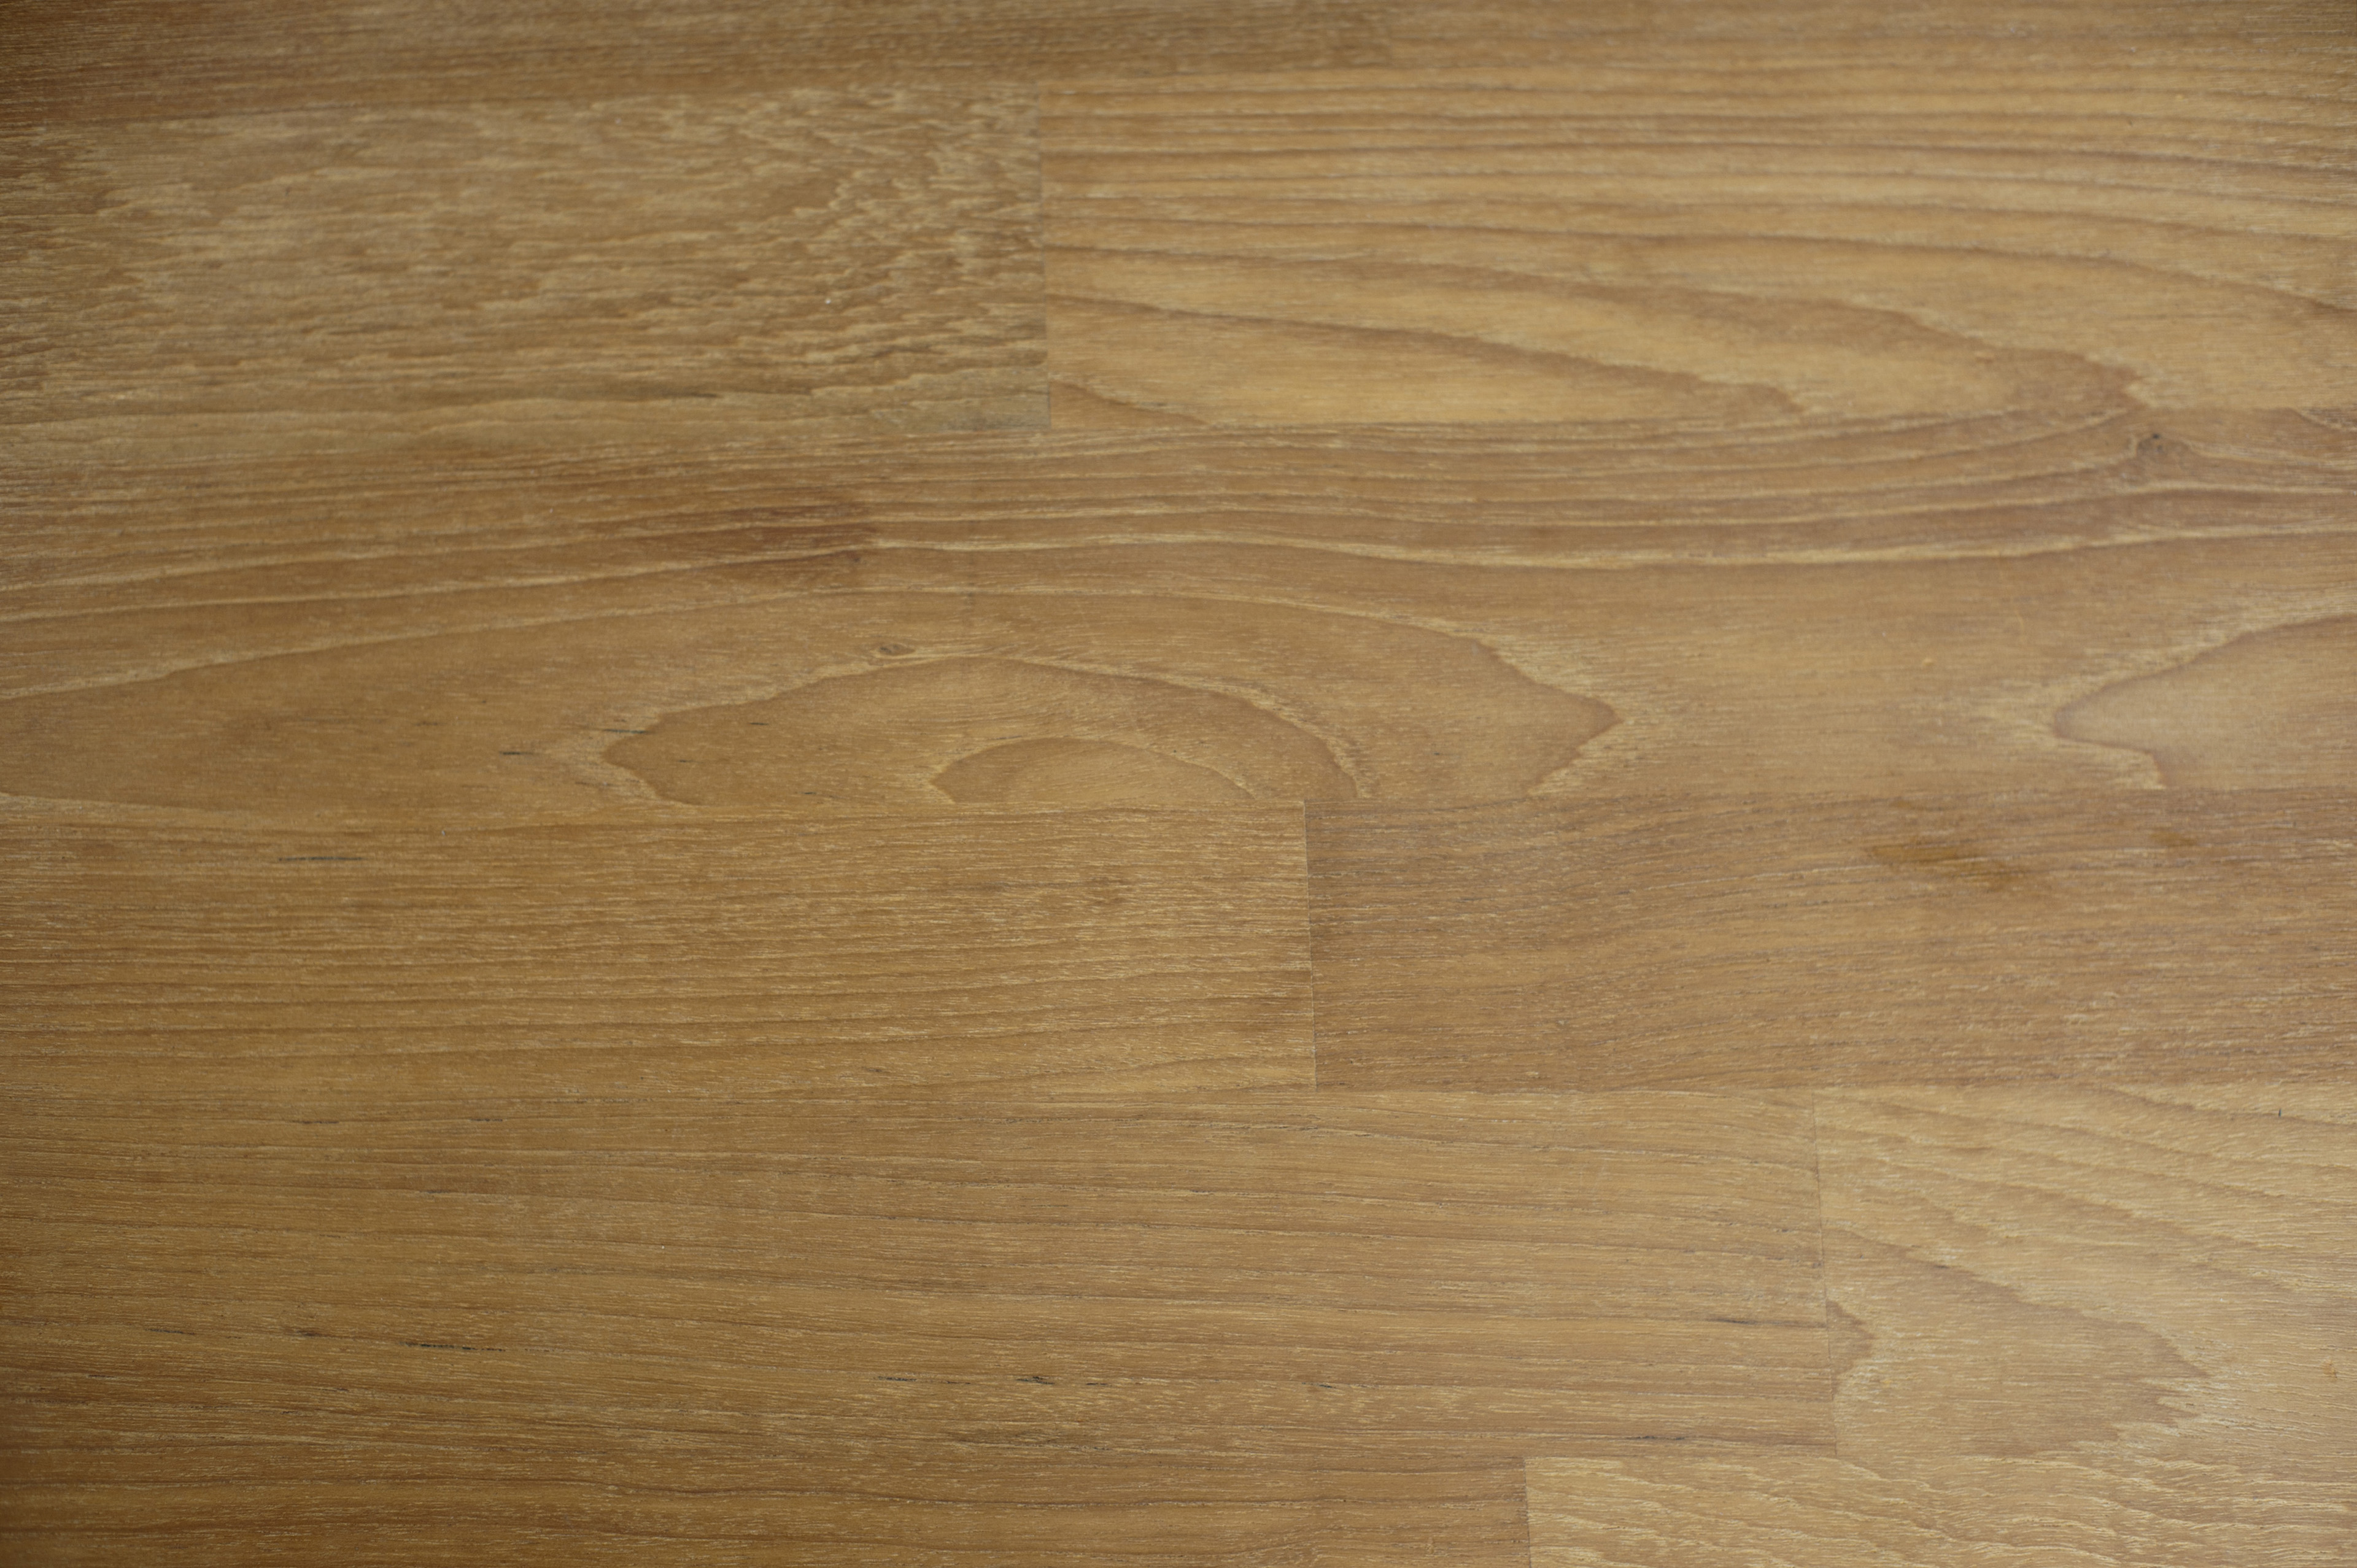 Image Of Parquet Flooring Made Of Laminate Wooden Battens